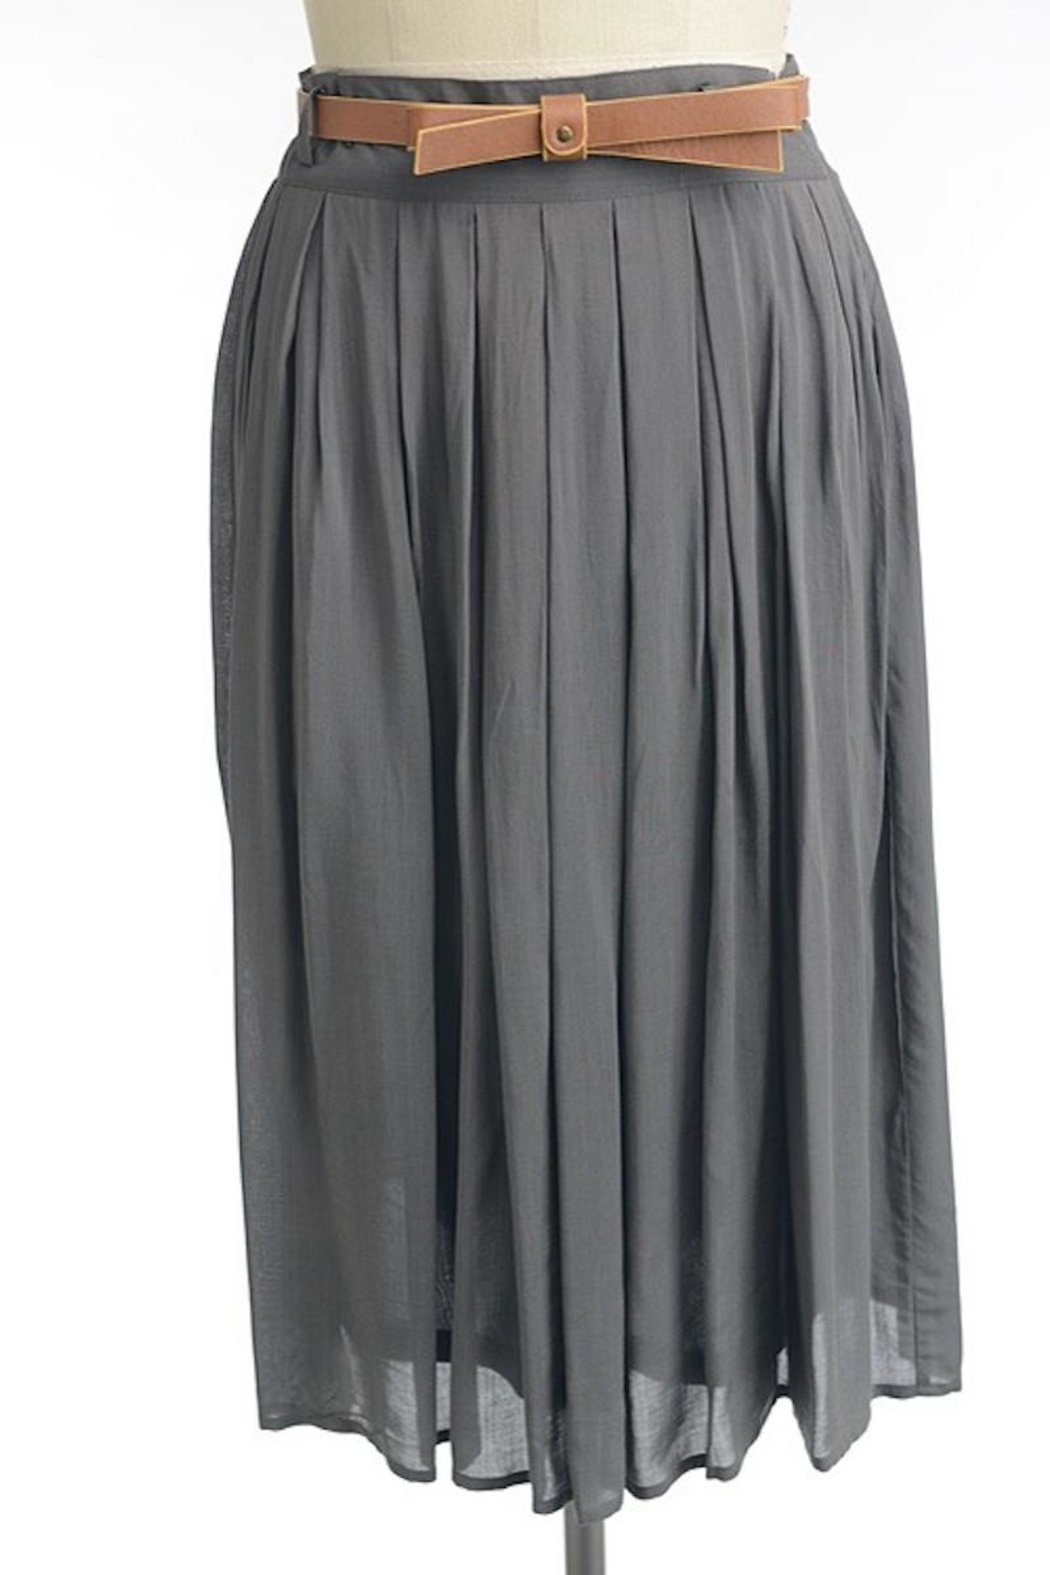 Comme Toi Favorite Grey Skirt - Main Image